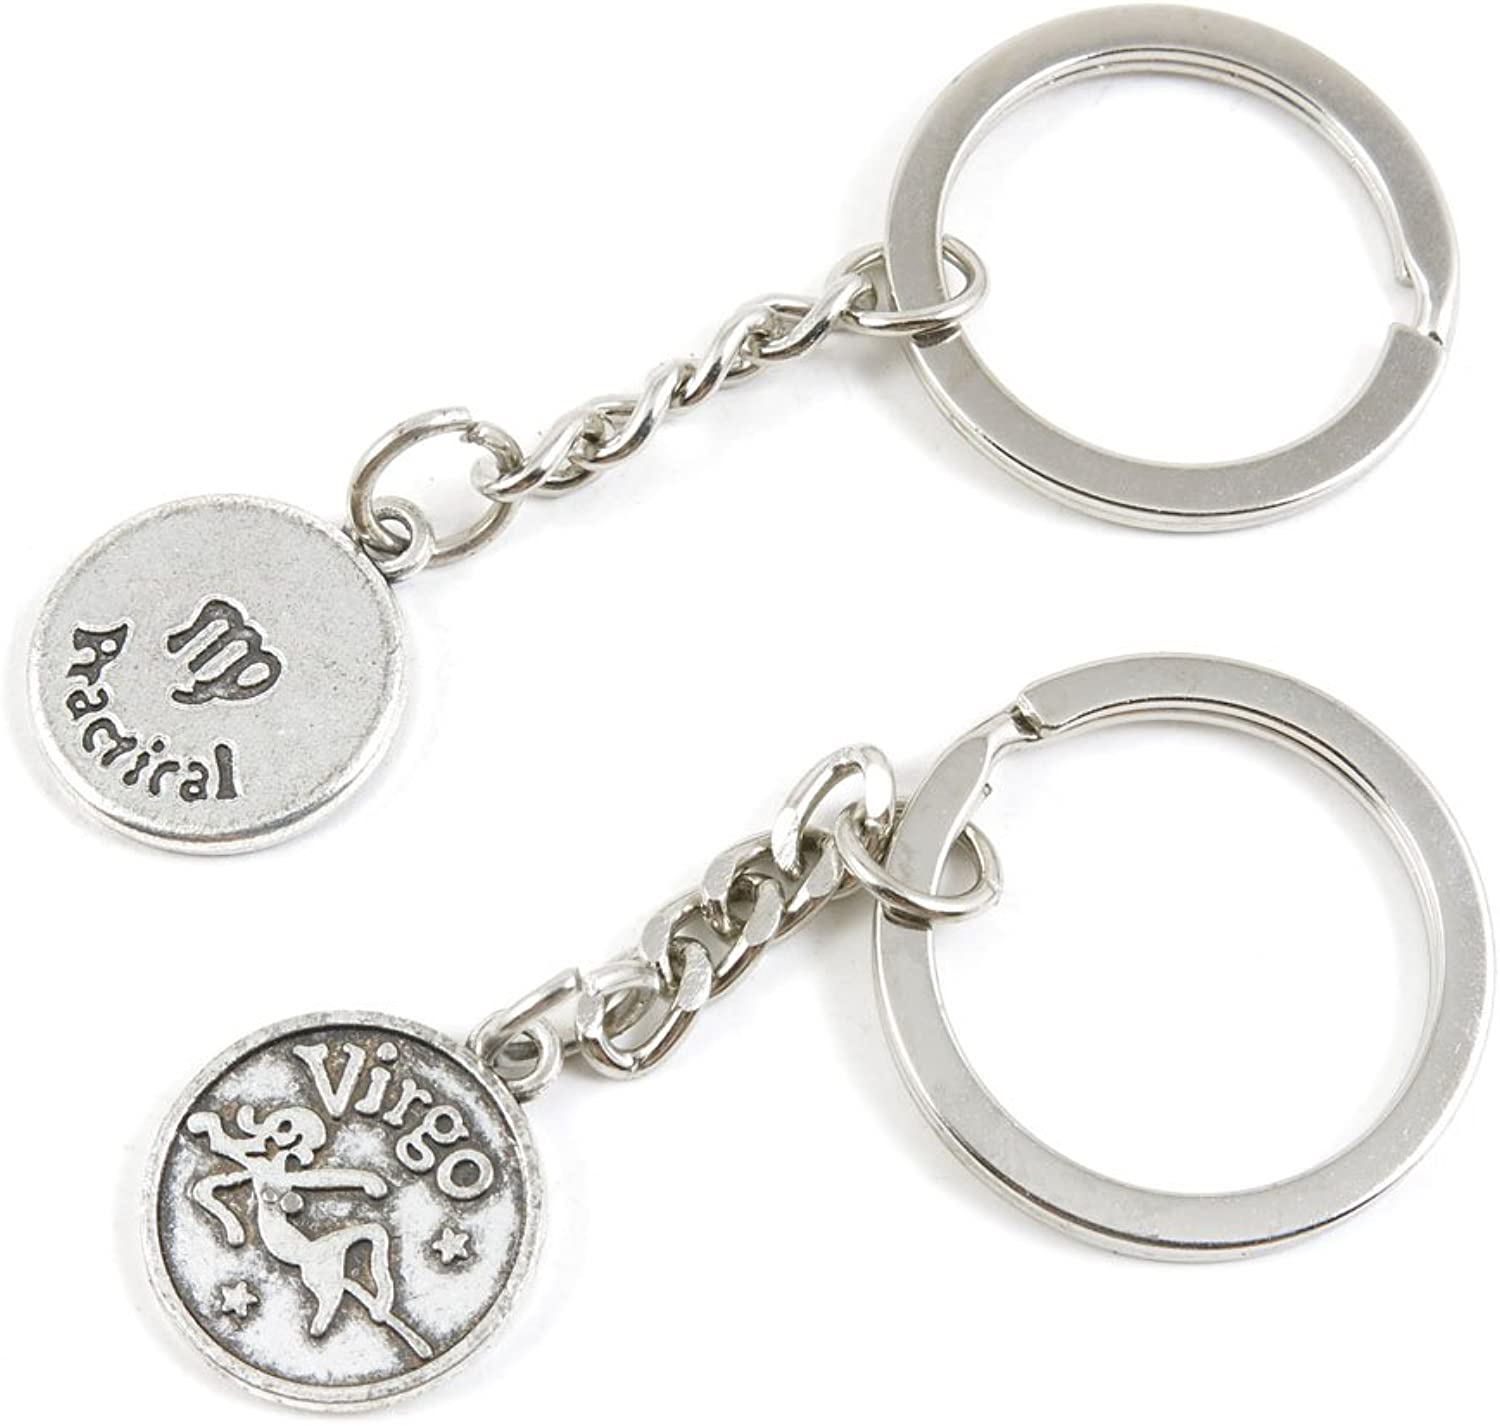 100 Pieces Keychain Keyring Door Car Key Chain Ring Tag Charms Bulk Supply Jewelry Making Clasp Findings H8NW2S Virgo